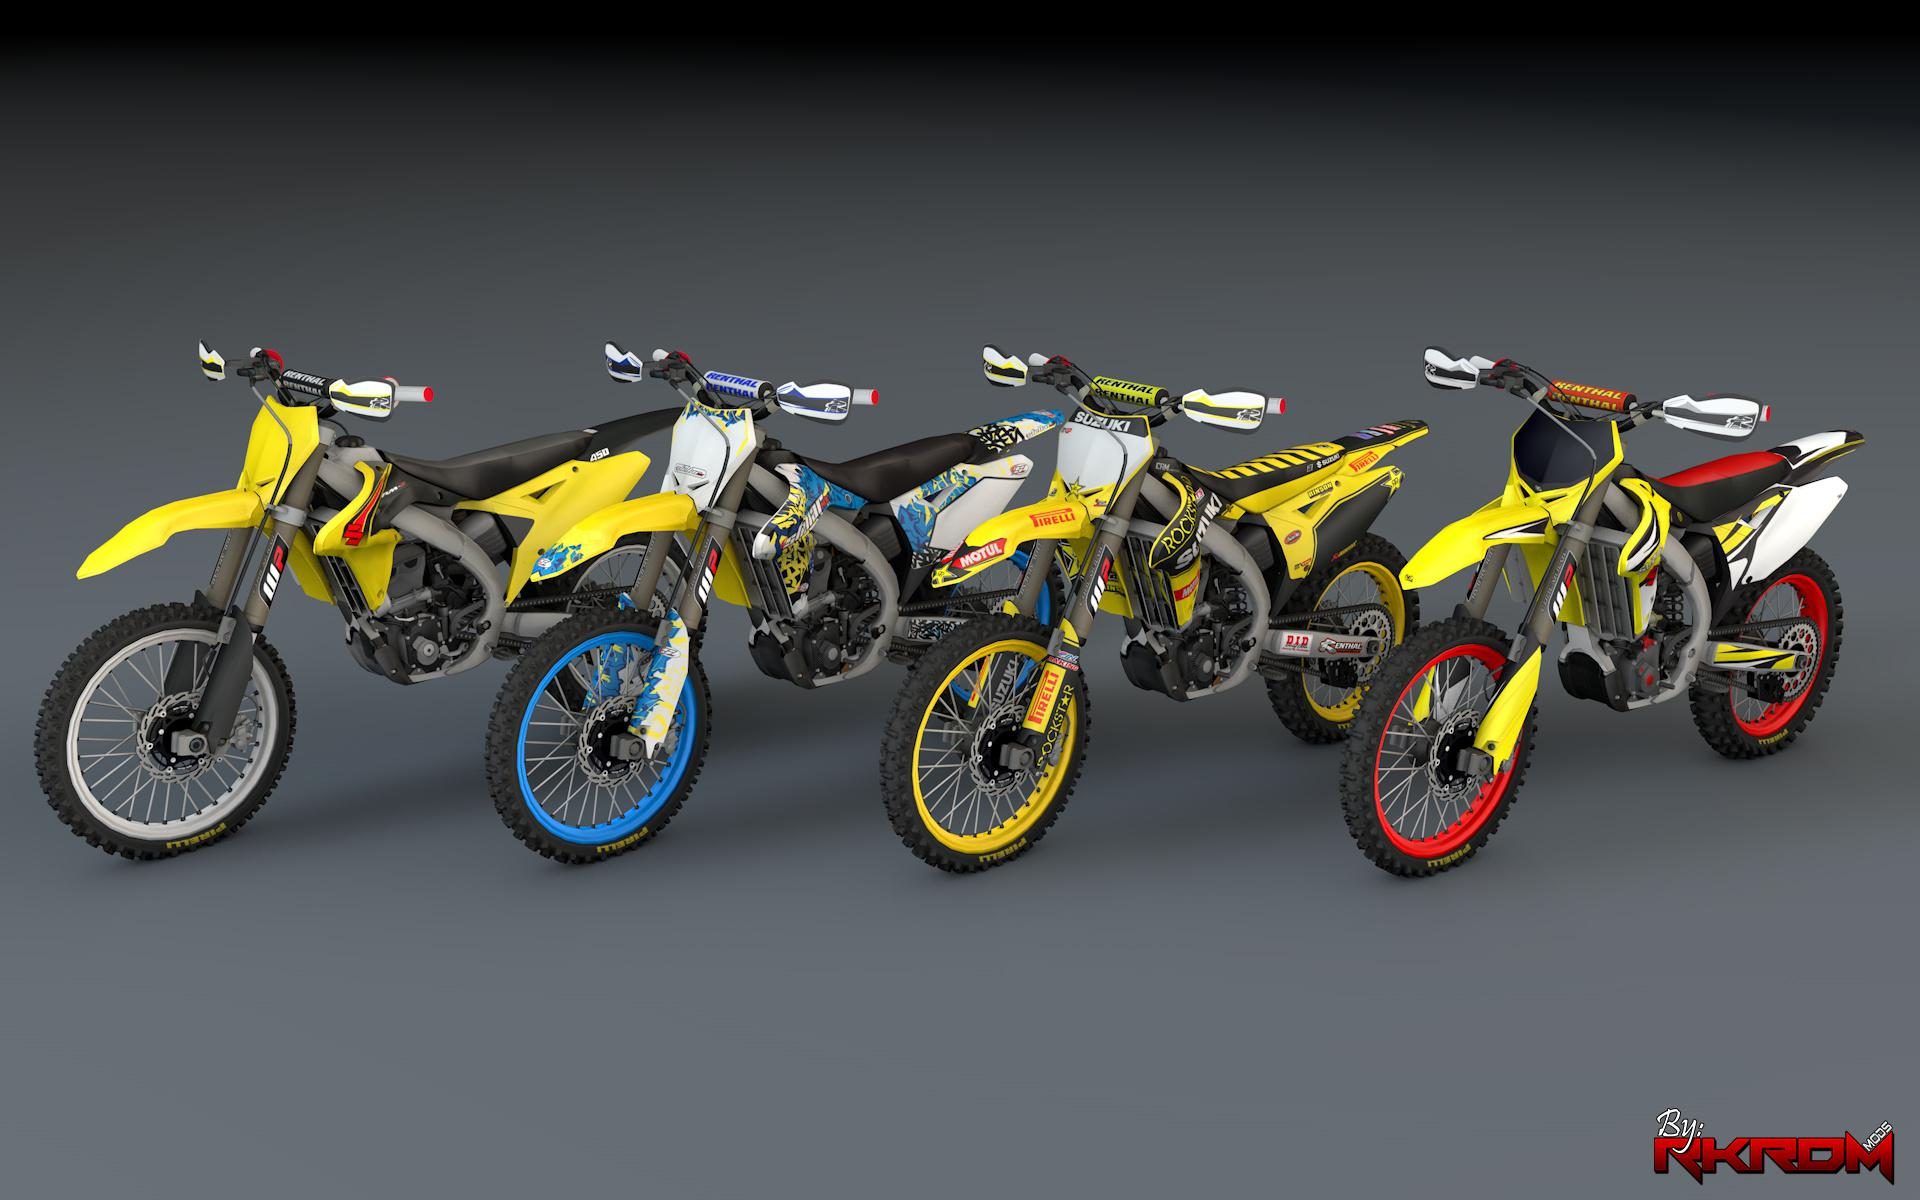 2015 suzuki rmz 250 version 3 gta5. Black Bedroom Furniture Sets. Home Design Ideas